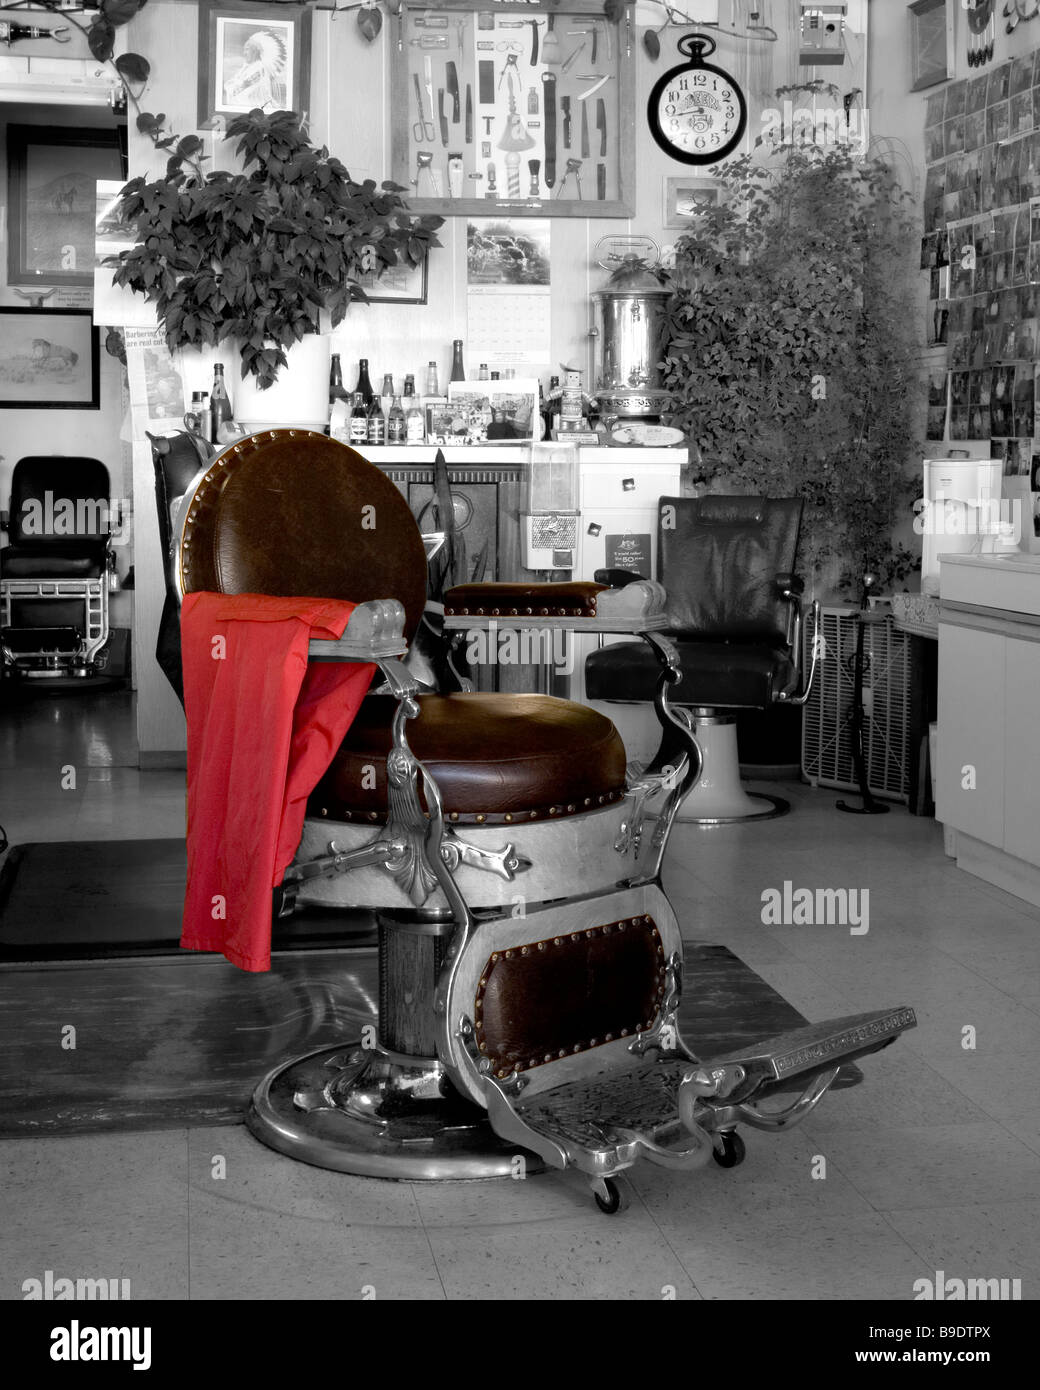 Old School Barber Chair An Old Fashioned Barber Chair In A Small Town Barber Shop